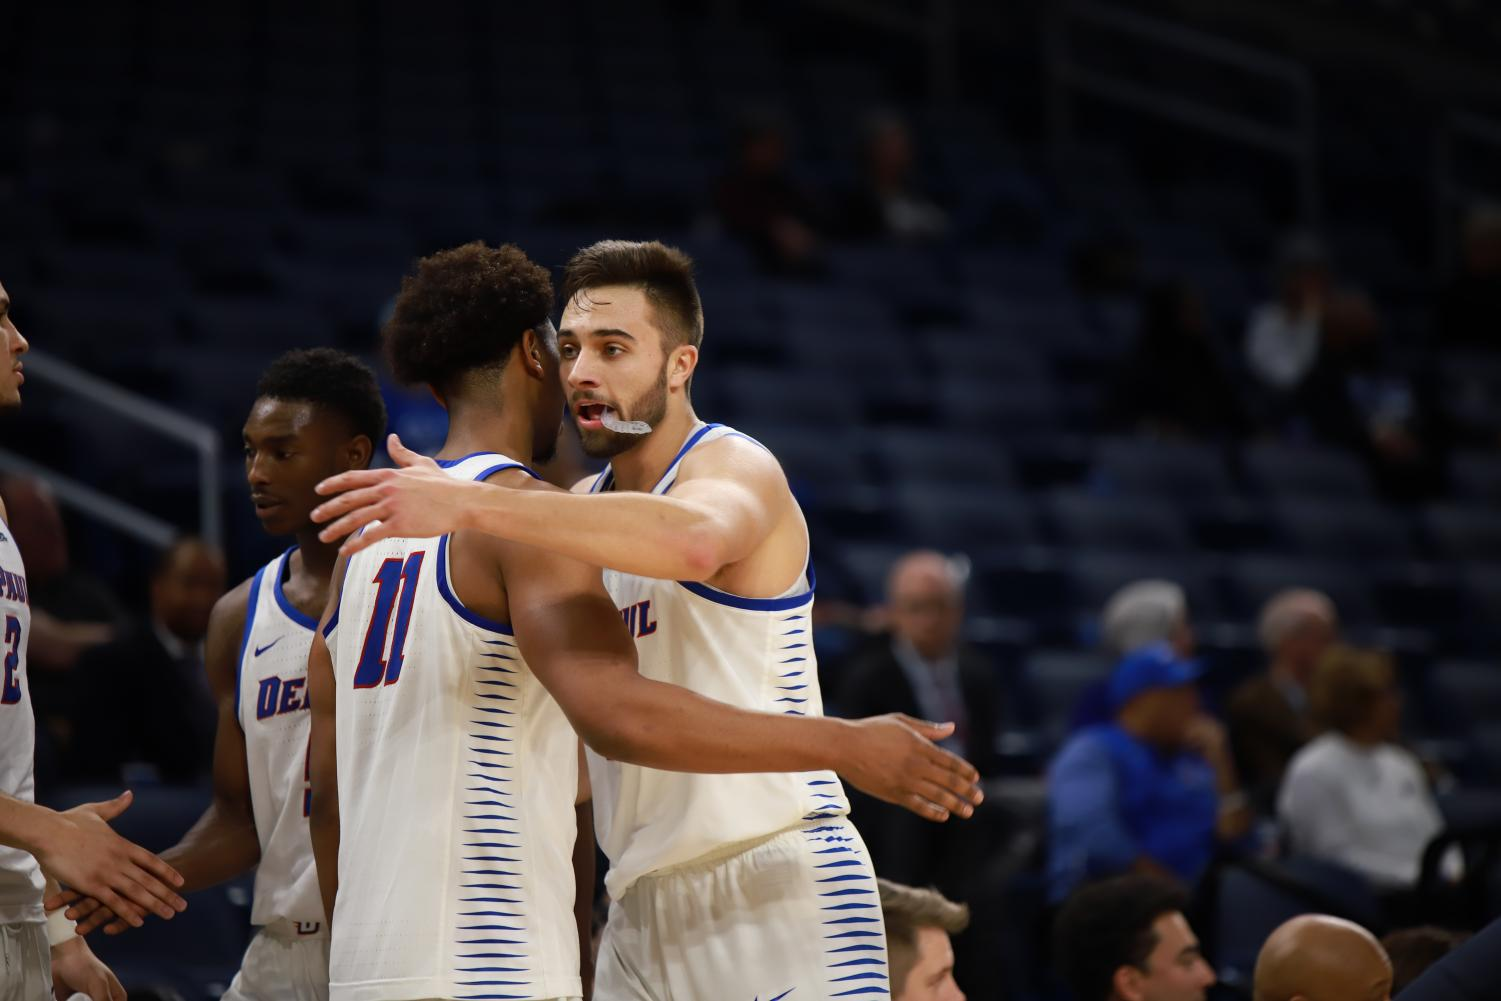 DePaul seniors Eli Cain and Max Strus celebrate the Blue Demons 80-58 victory over Bethune-Cookman on Wednesday night.